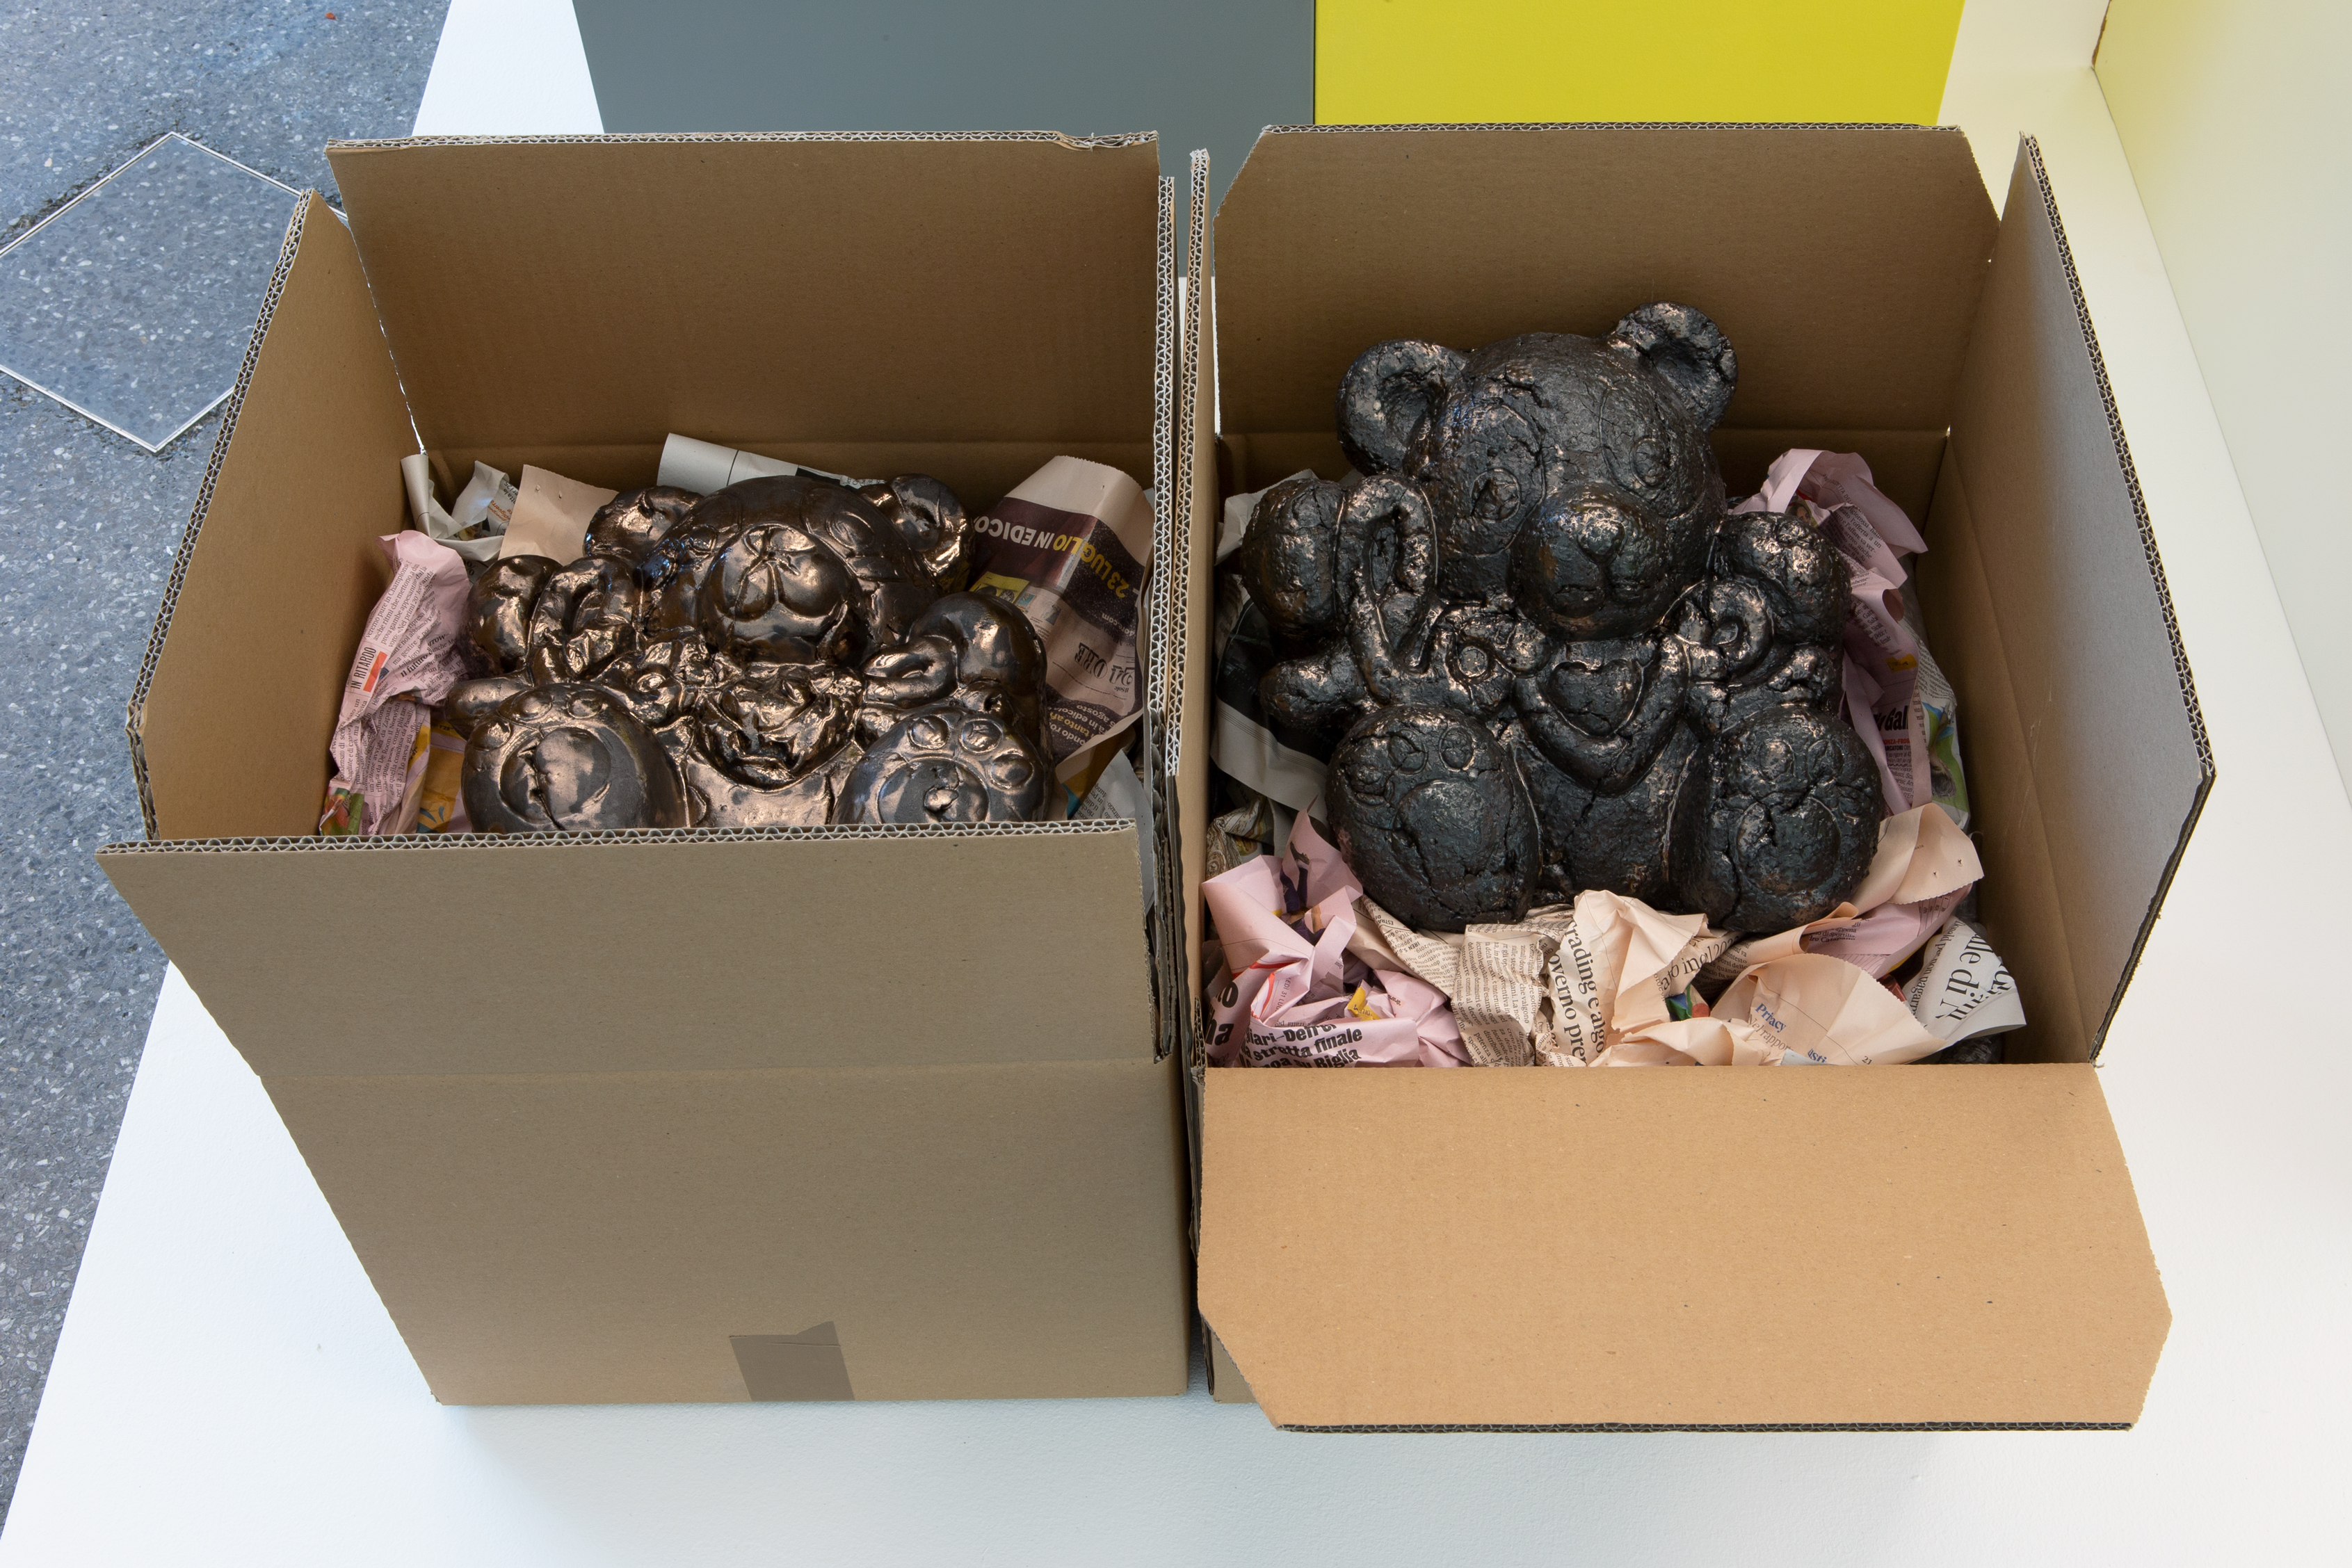 Gina Folly, Love IV & Love V, 2019, cardboard box, newspaper, glazed ceramics, 56 x 37, 5 x 66,5 cm